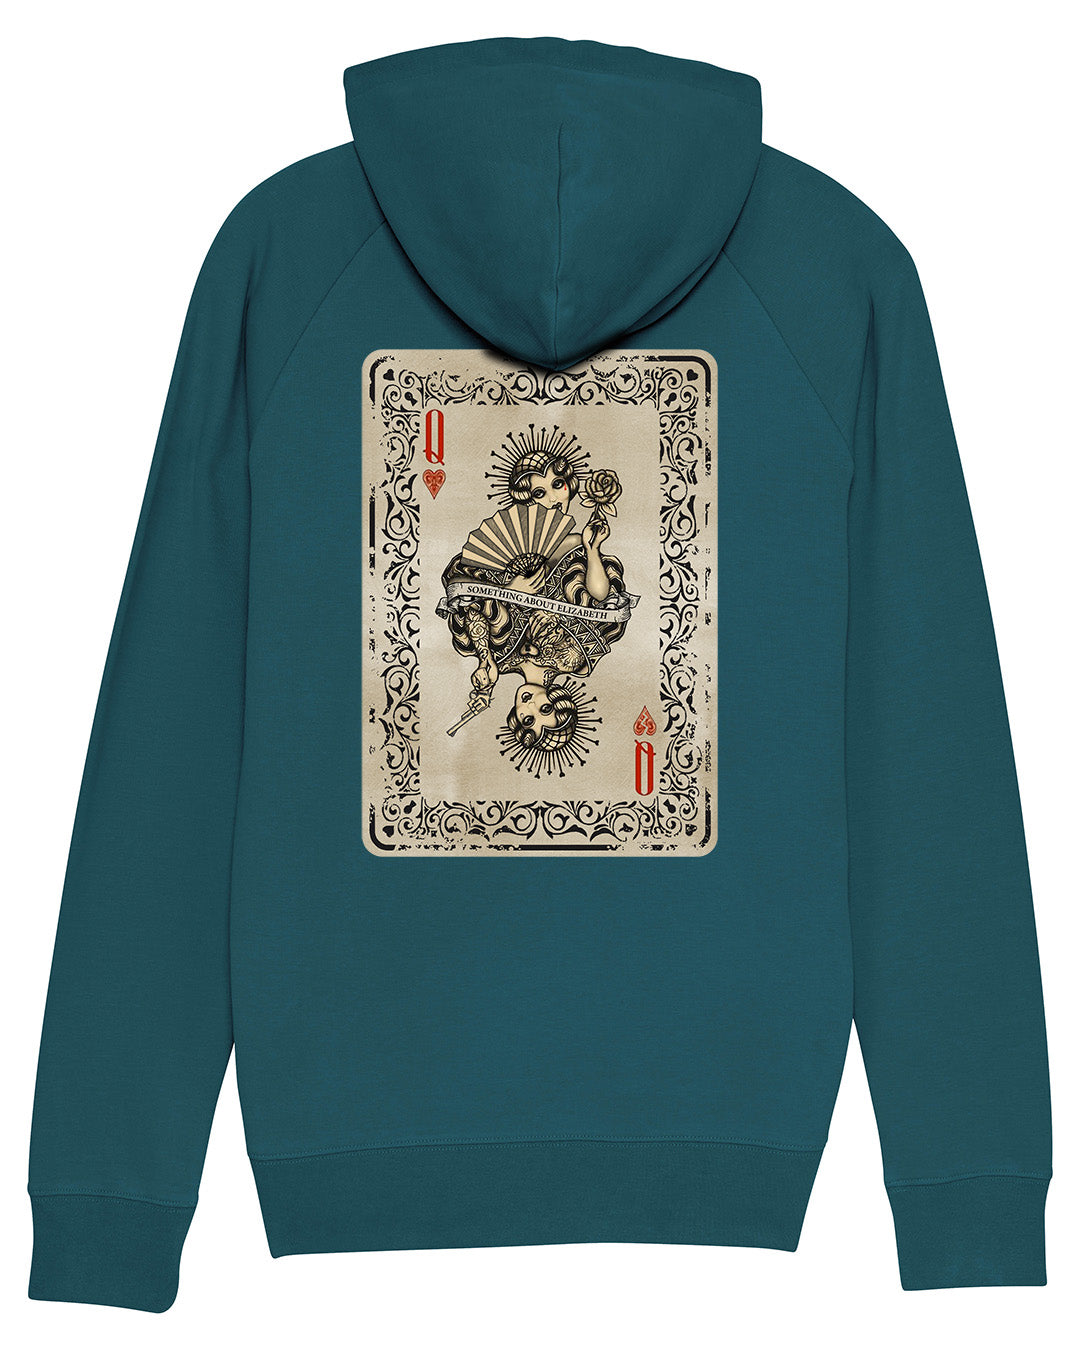 Queen Of Hearts Hoody - Stargazer